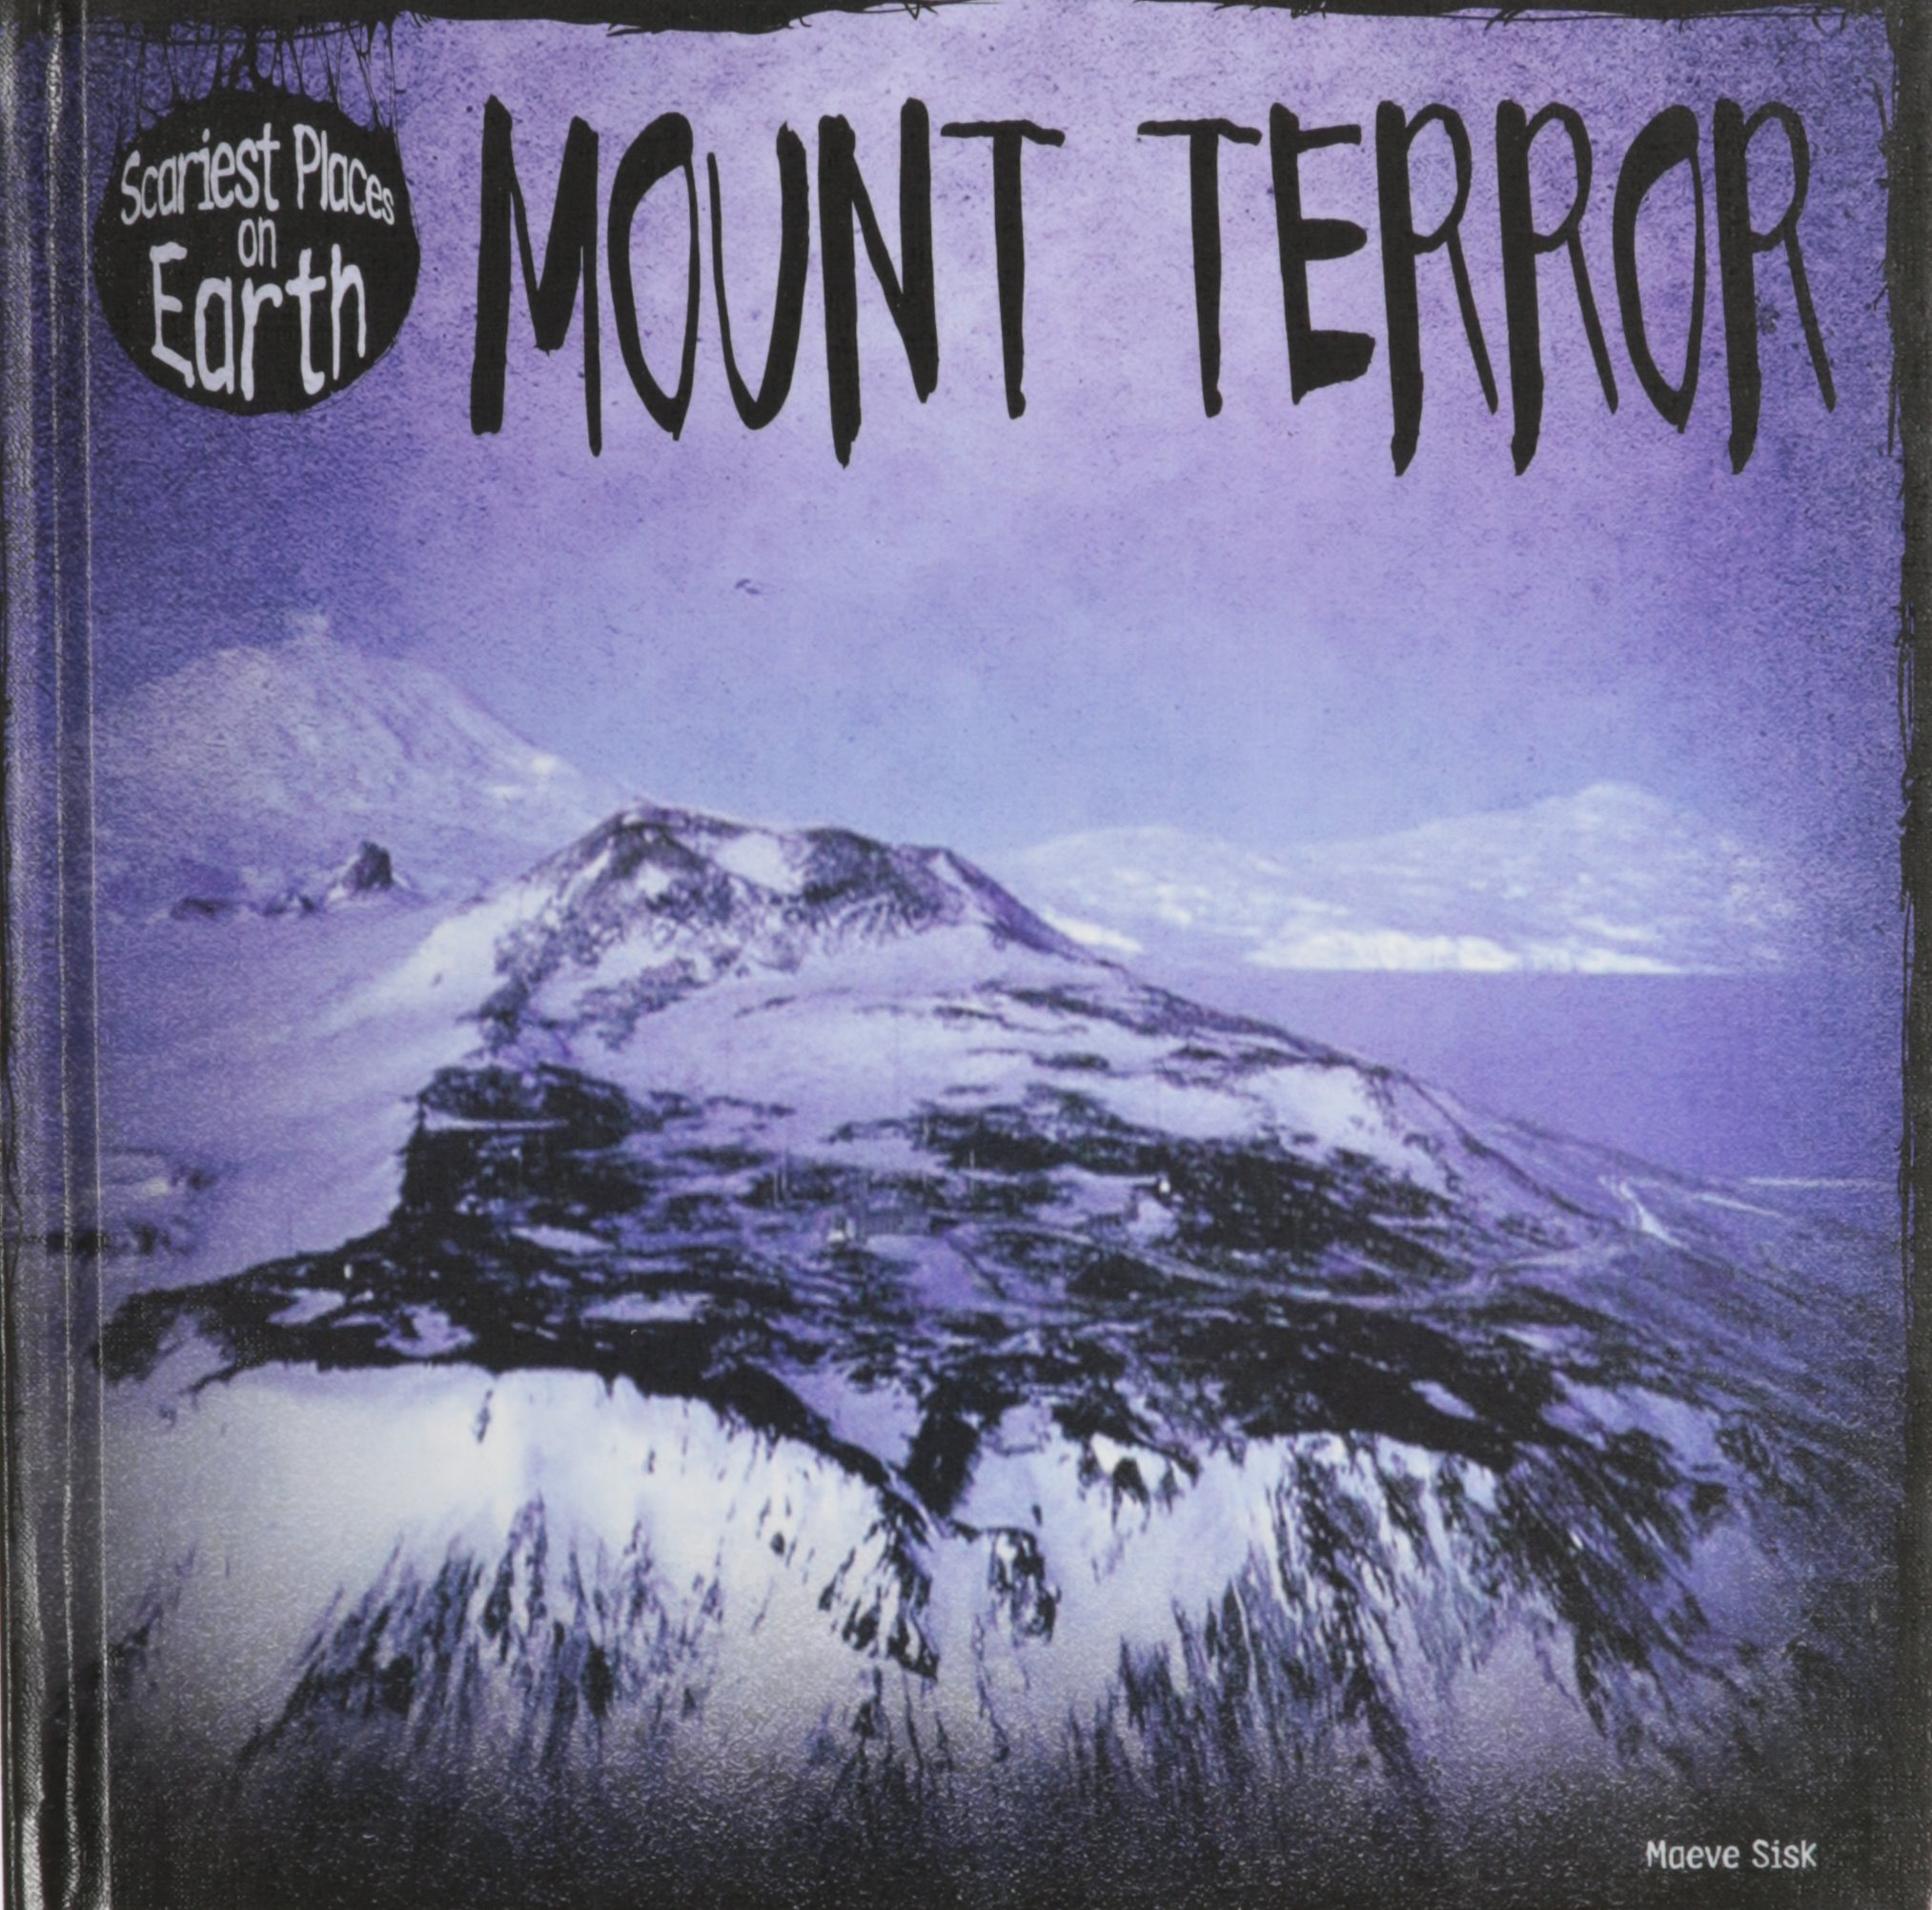 Scariest Places on Earth Set pdf